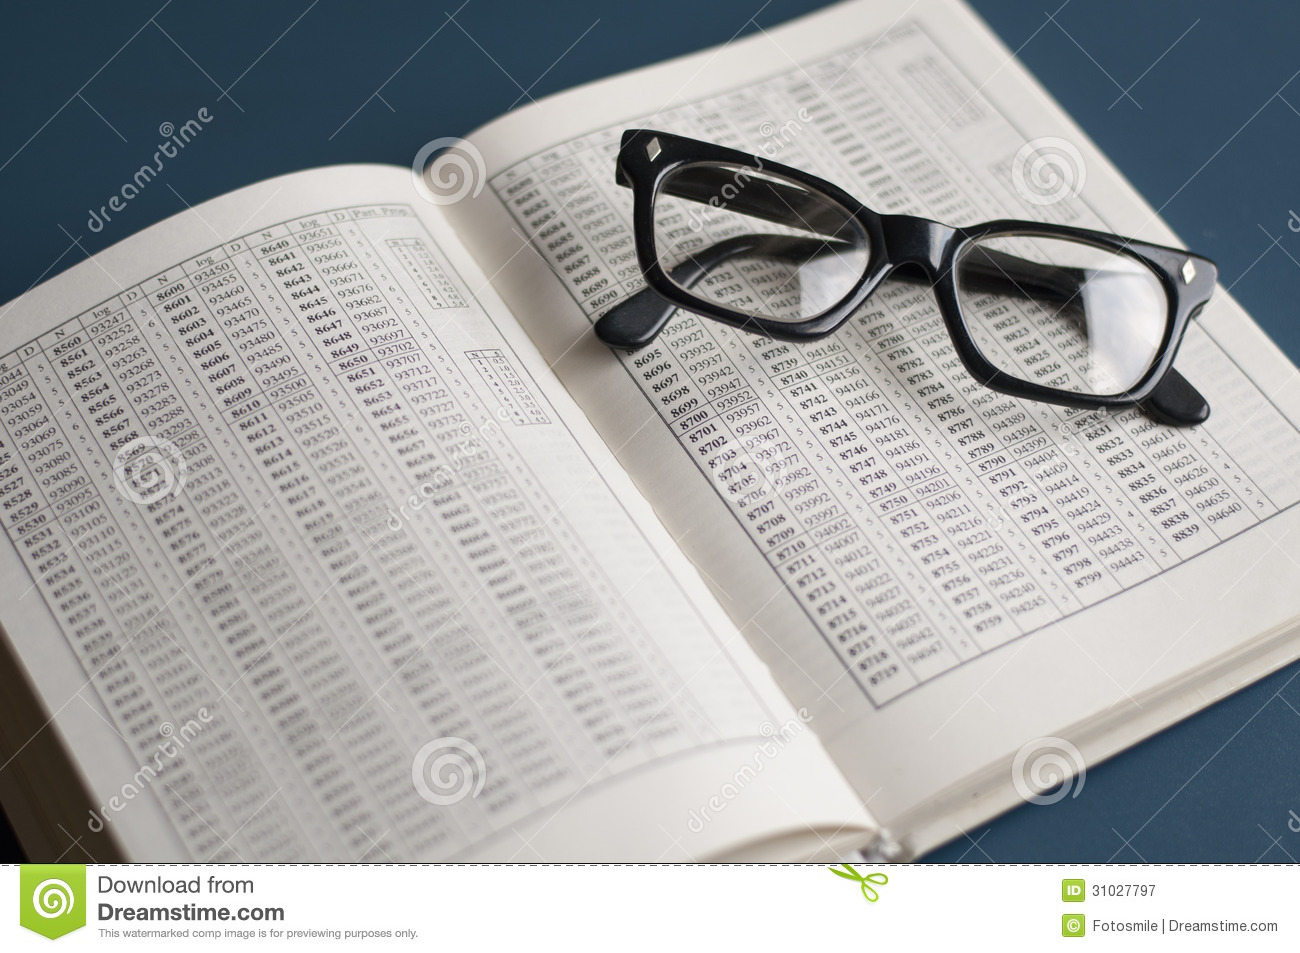 Math stock image. Image of spectacles c46ca87203f